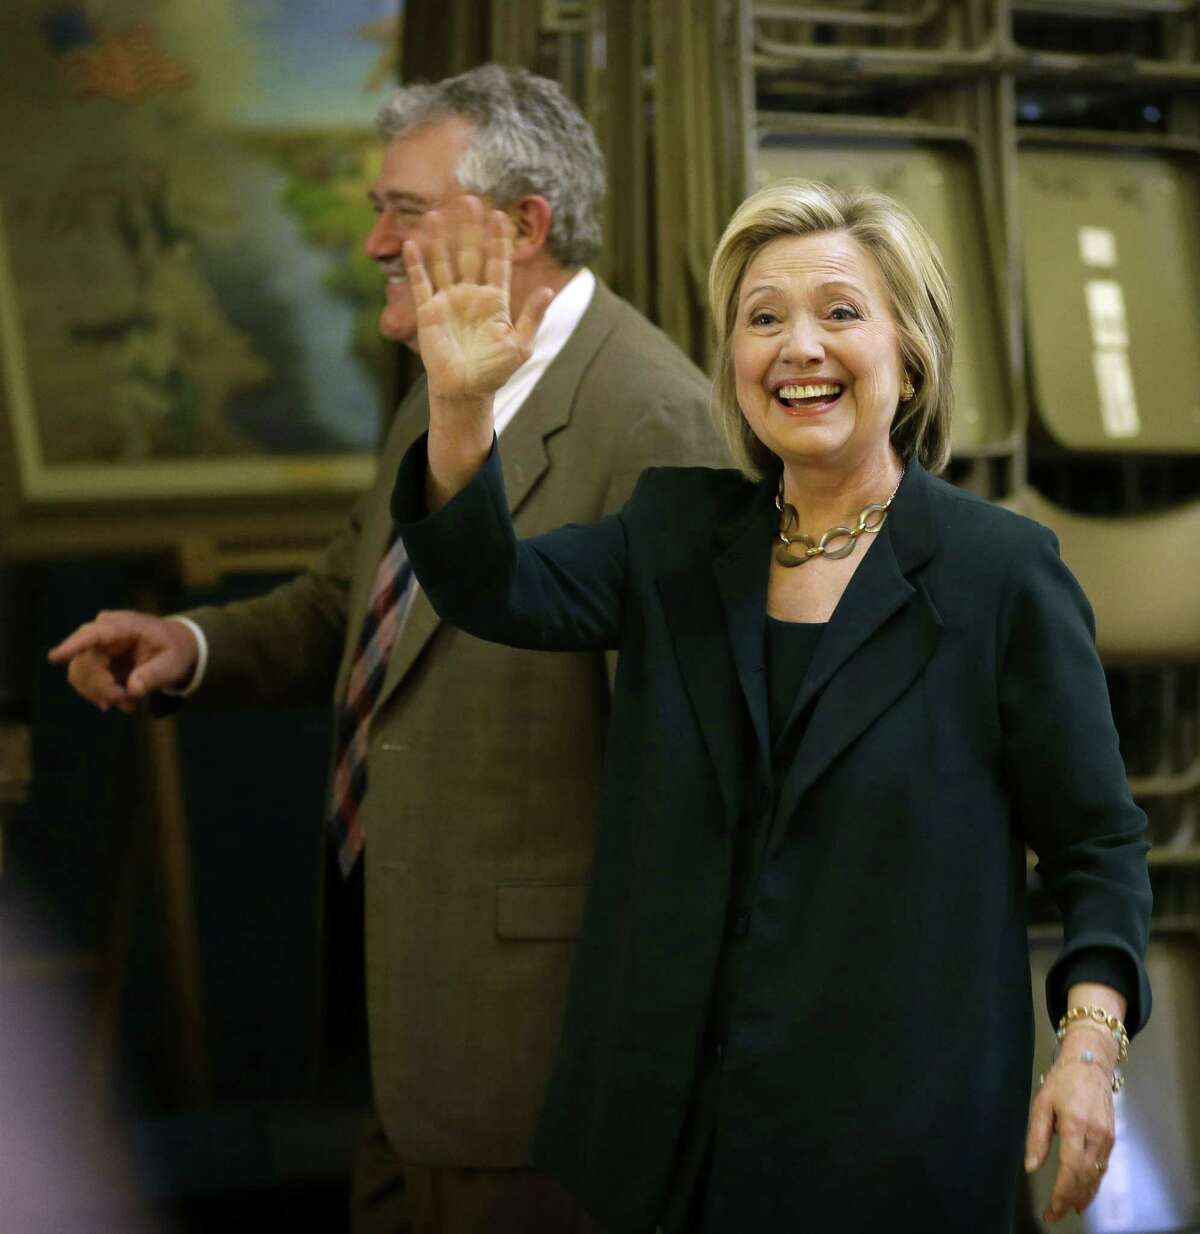 Democratic presidential candidate Hillary Rodham Clinton waves as she arrives at the Iowa Statehouse to meet with Democratic Party lawmakers on April 15, 2015, in Des Moines, Iowa.